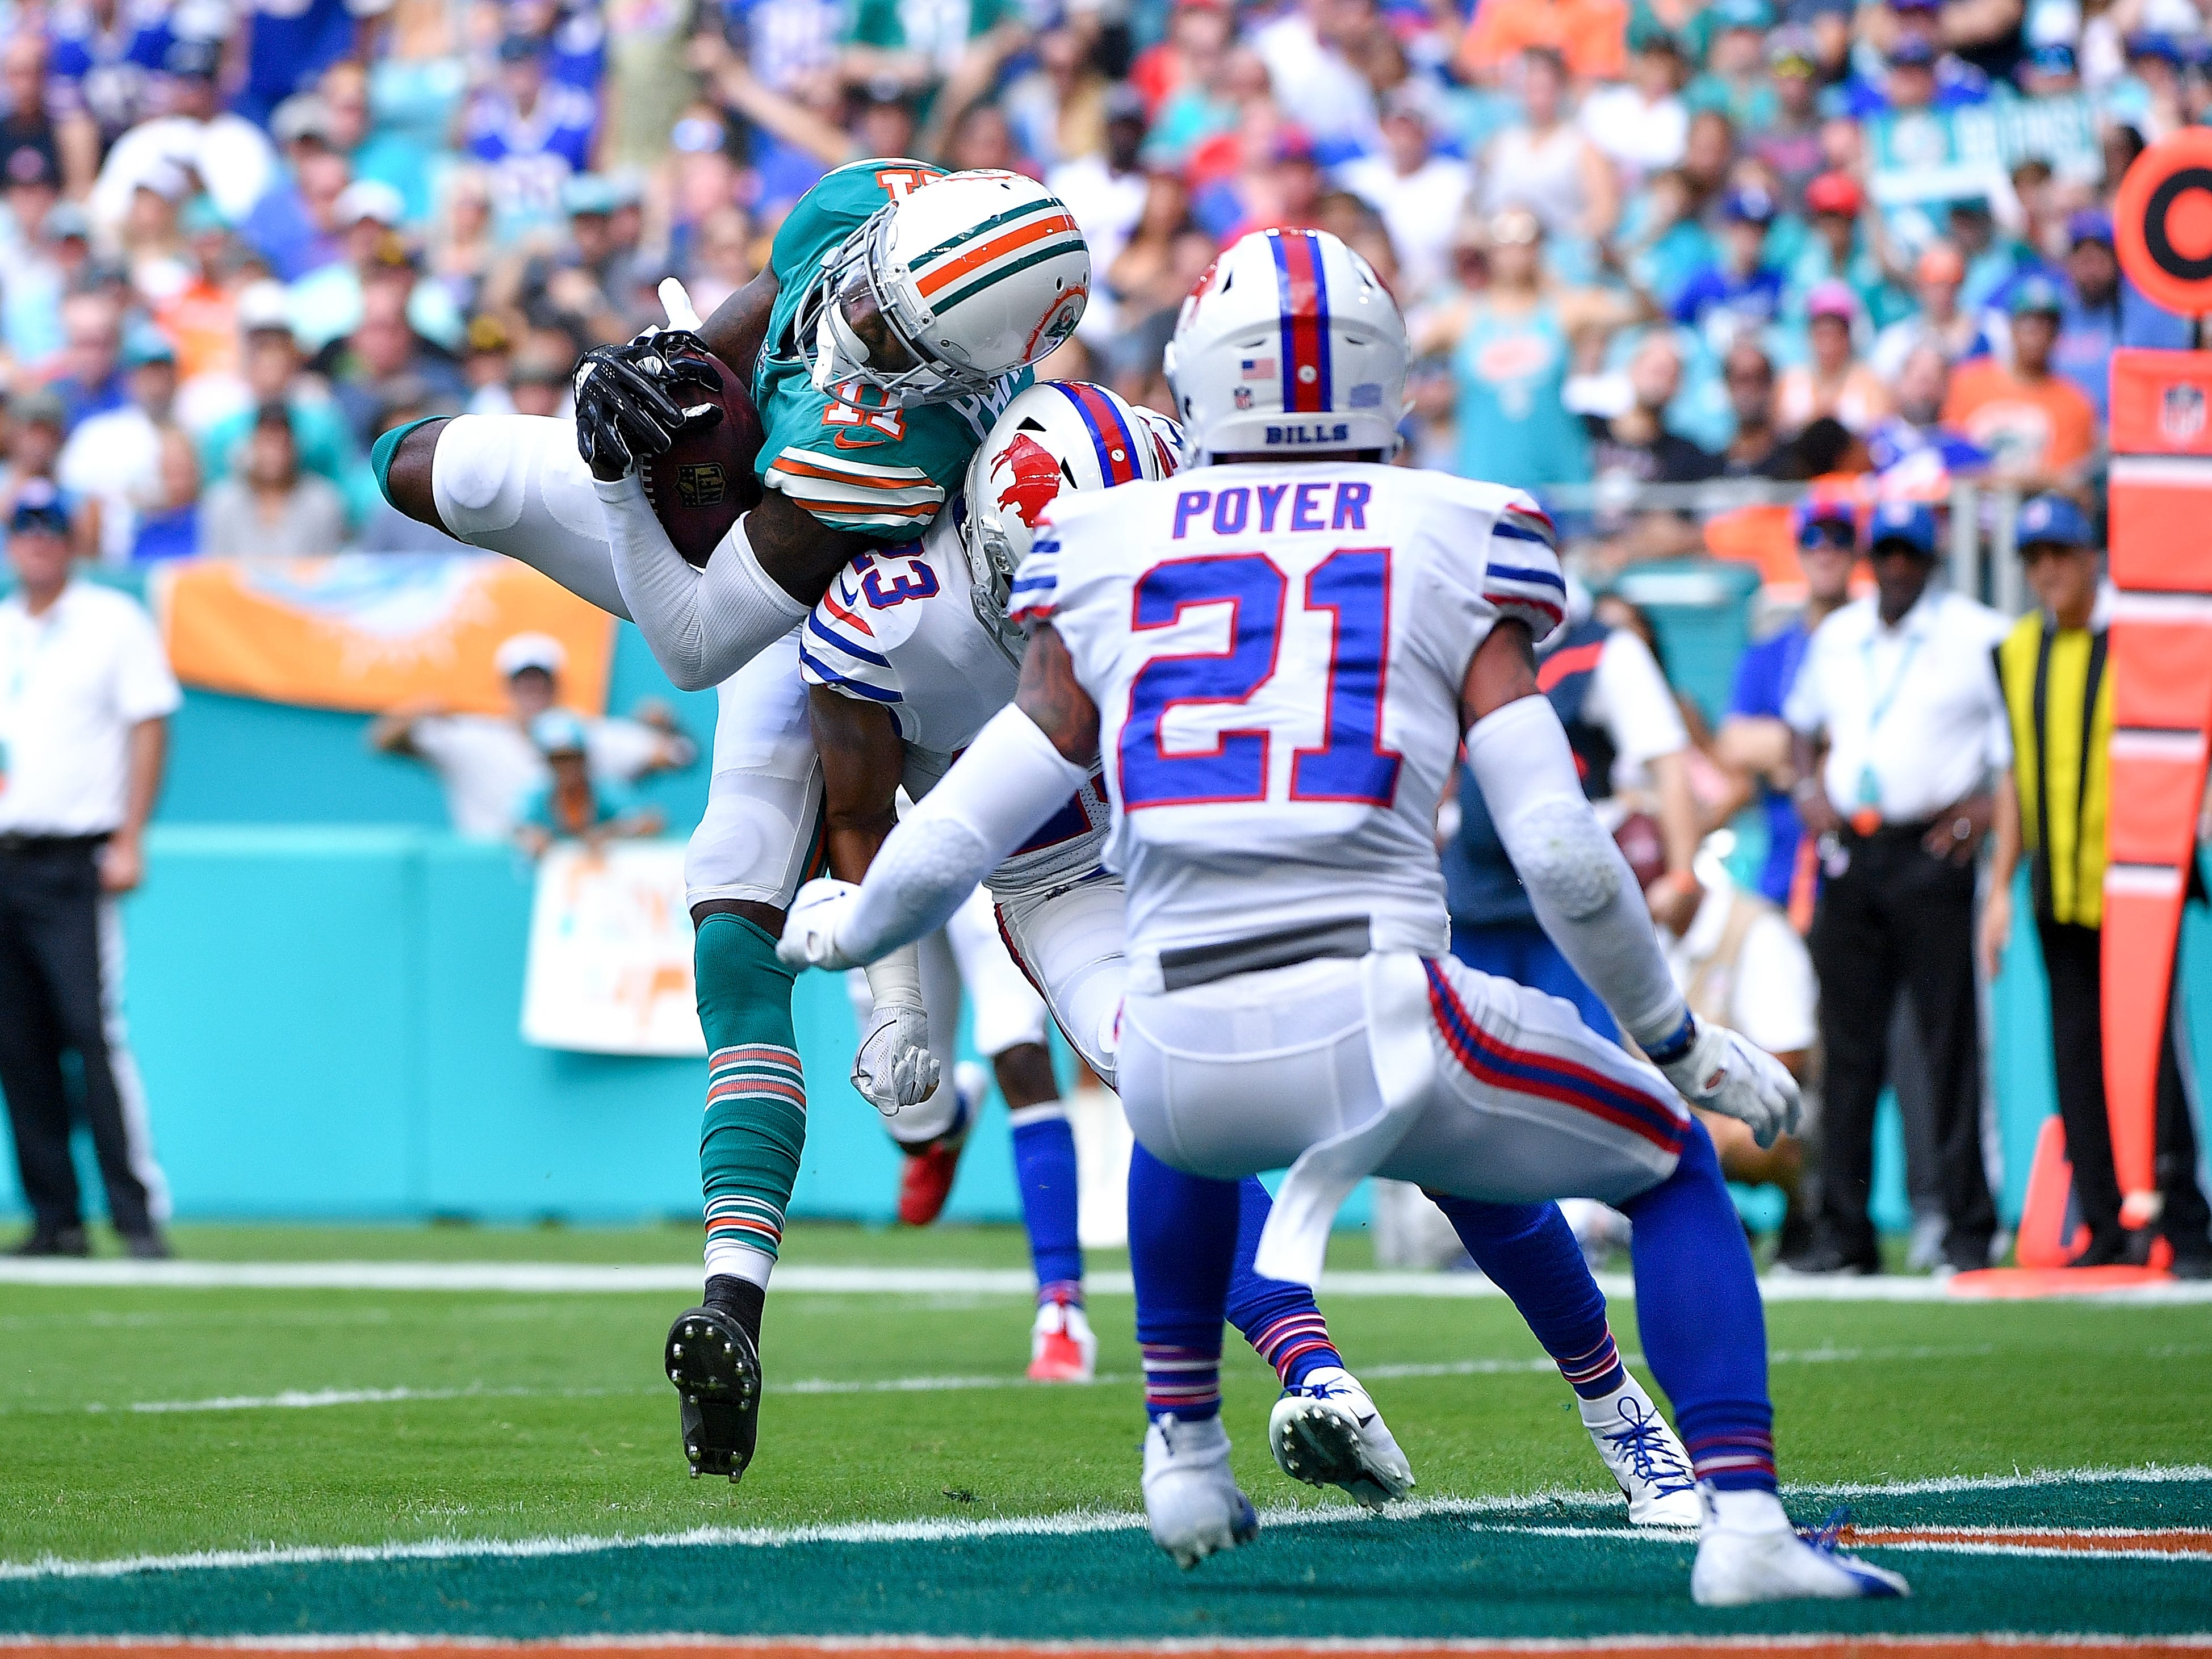 MIAMI, FL - DECEMBER 02: DeVante Parker #11 of the Miami Dolphins scores a touchdown during the first quarter against the Buffalo Bills at Hard Rock Stadium on December 2, 2018 in Miami, Florida. (Photo by Mark Brown/Getty Images)